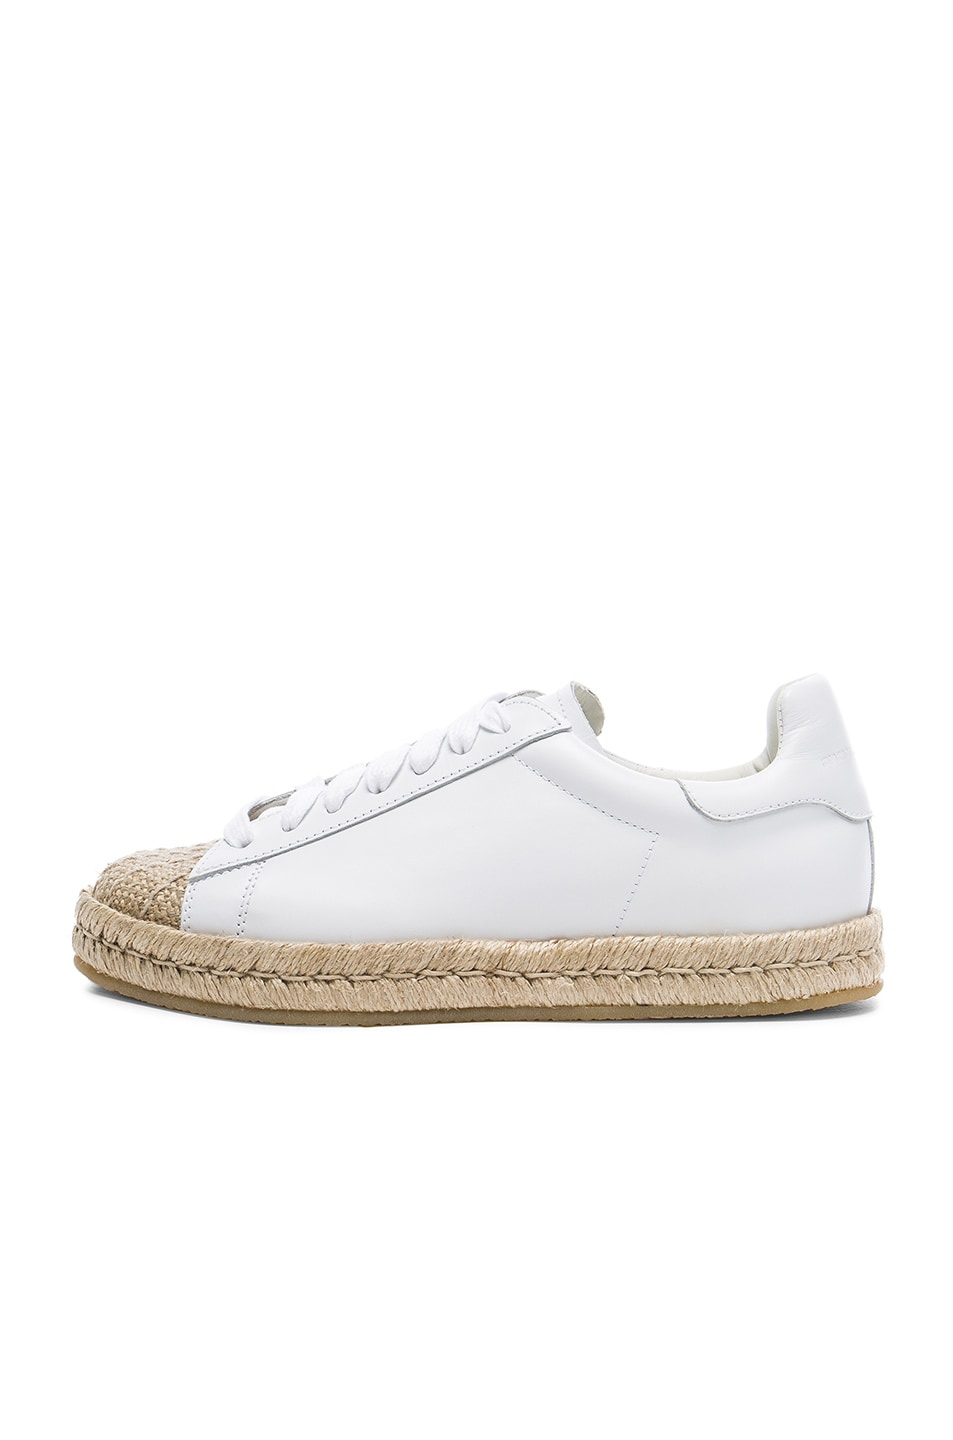 Image 5 of Alexander Wang Leather Rian Espadrilles in Optic White